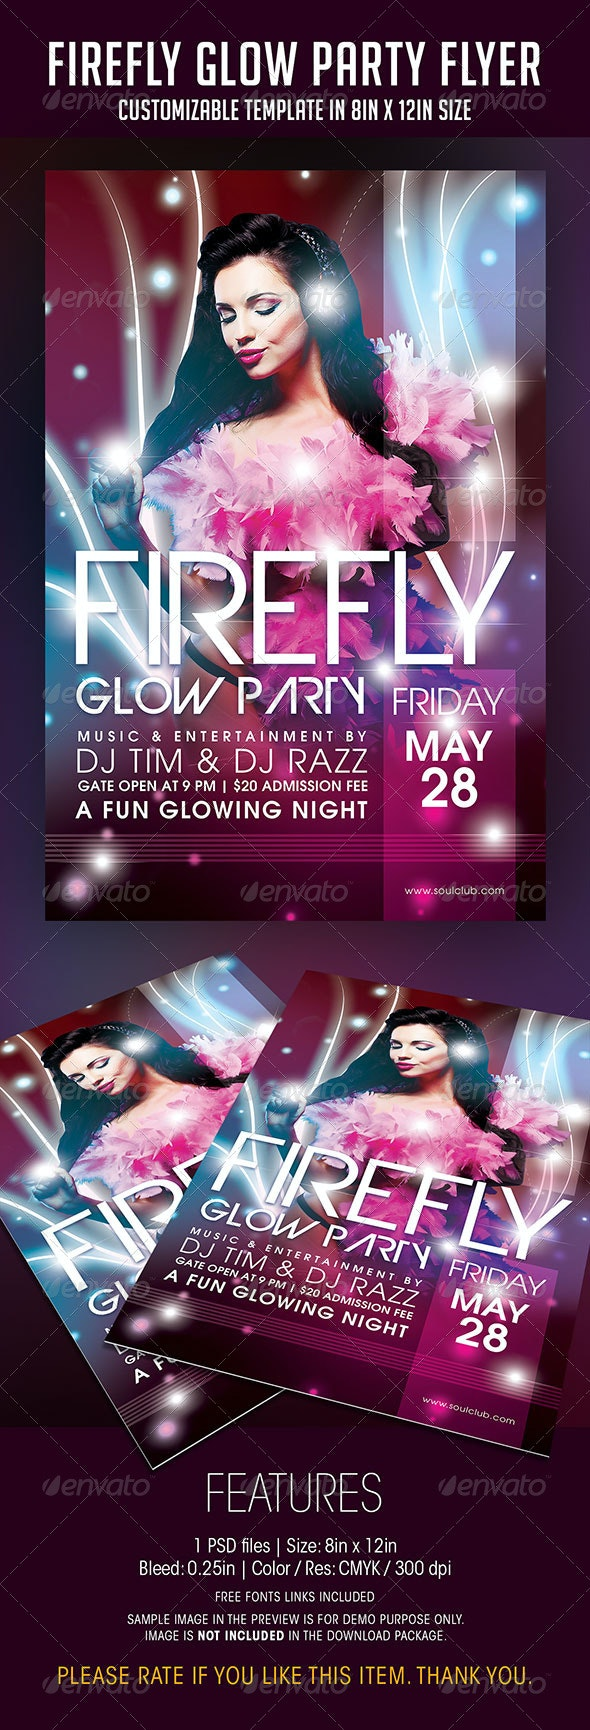 Firefly Glow Party Flyer - Clubs & Parties Events